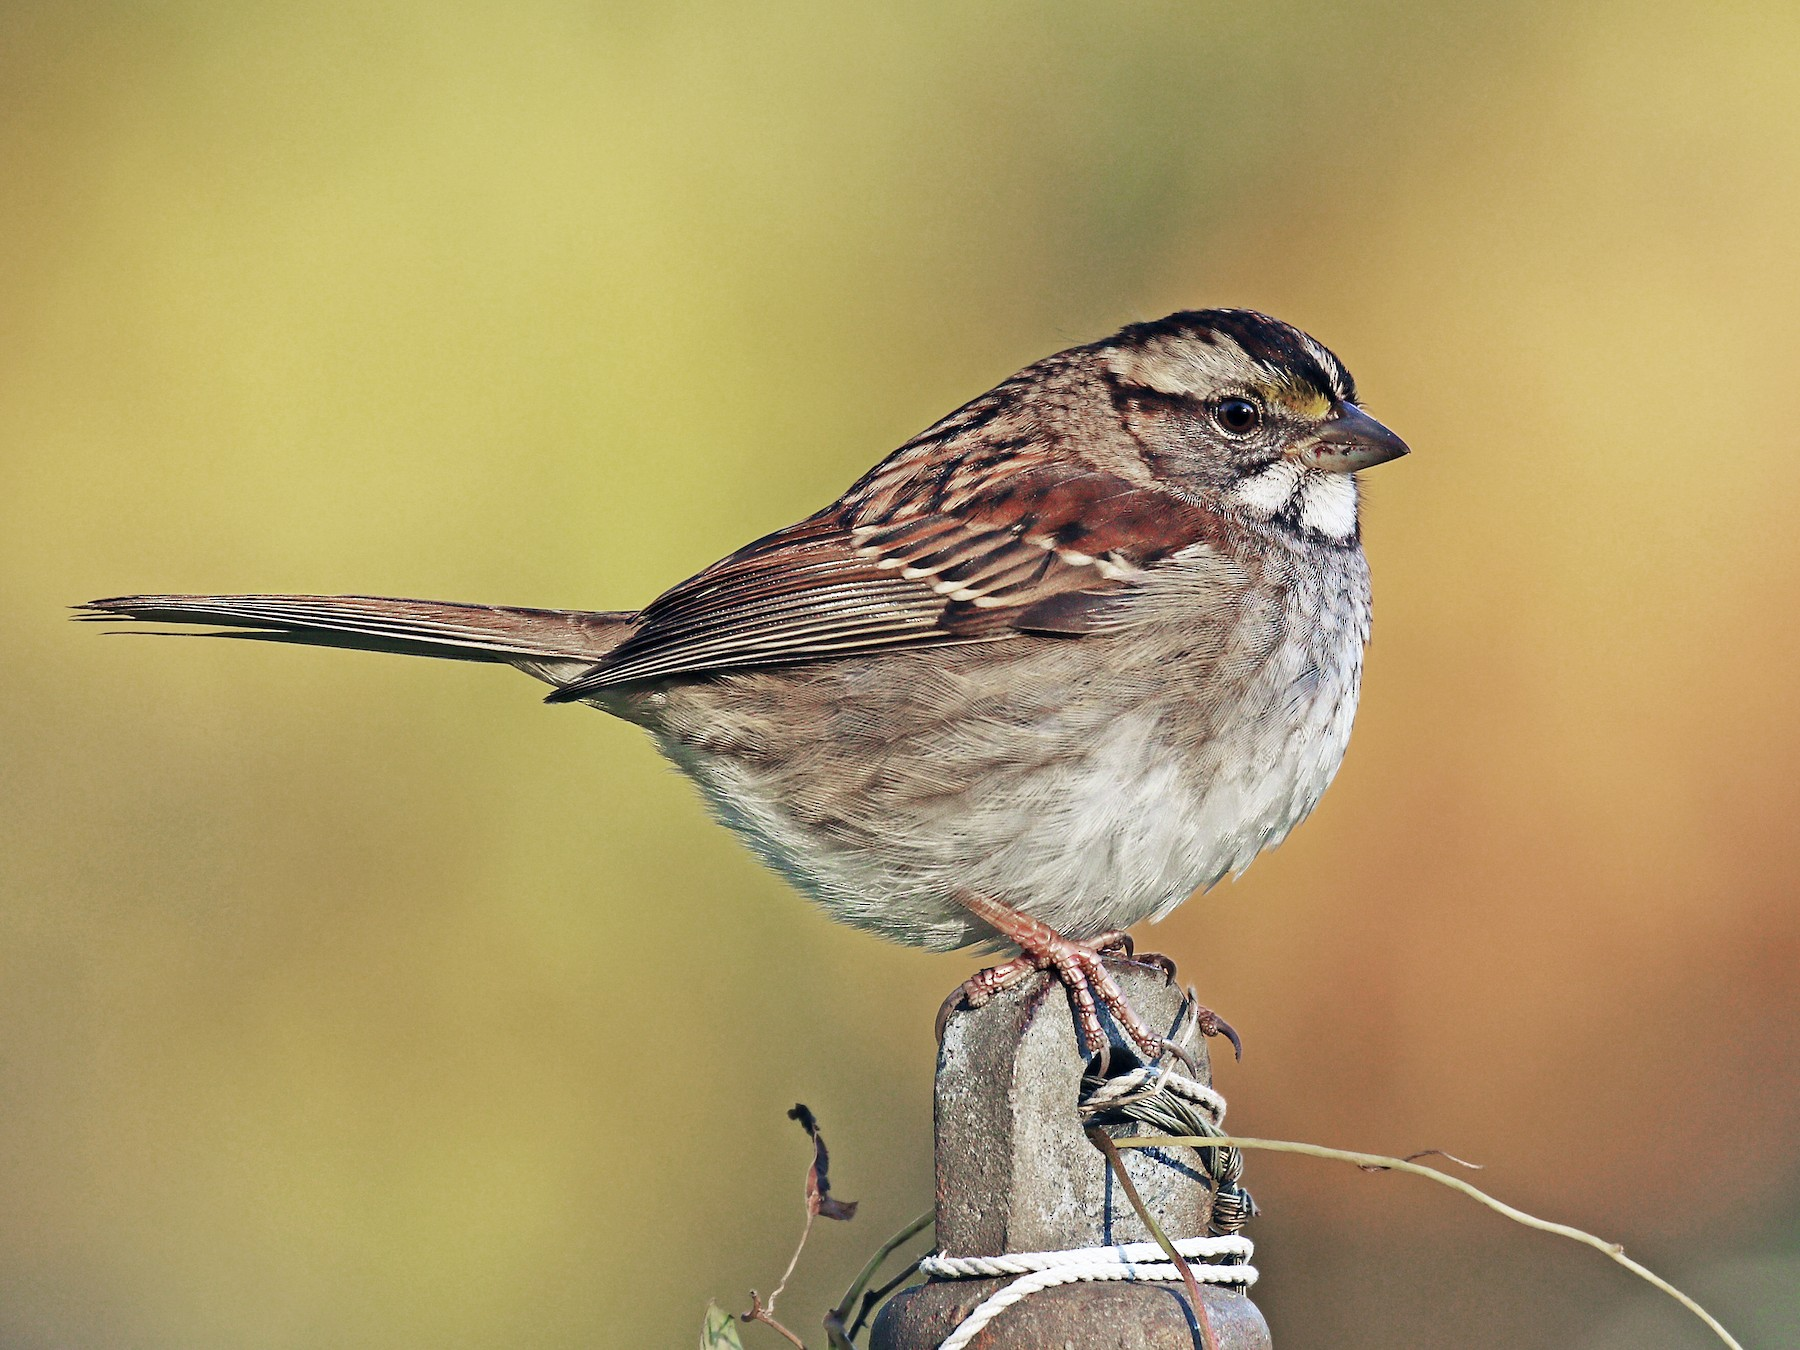 White-throated Sparrow - Ryan Schain